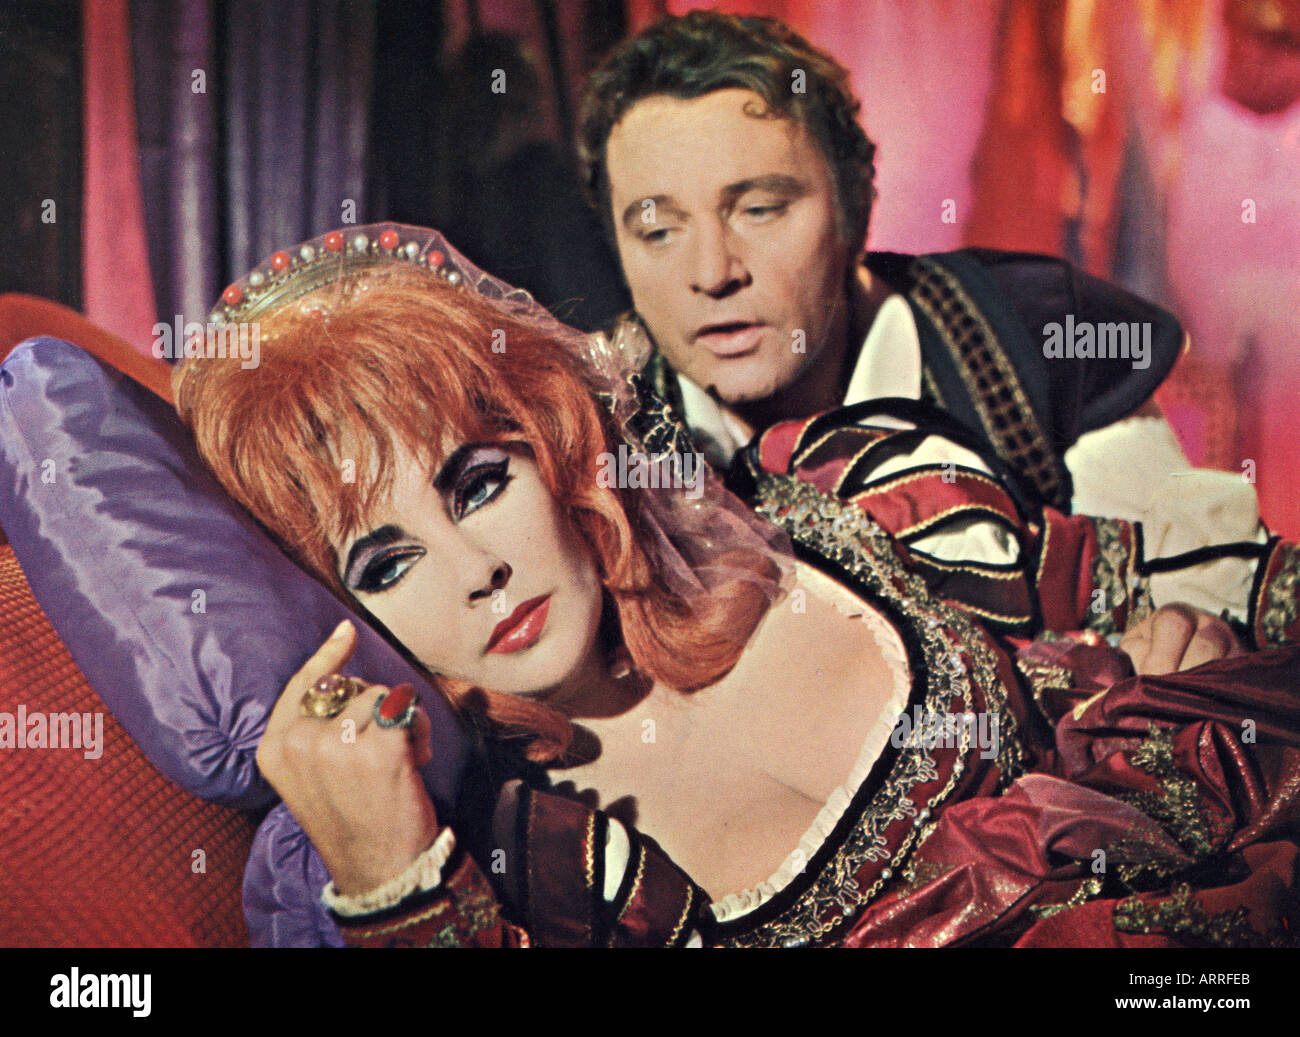 DR FAUSTUS 1967 film of the Marlowe play with Elizabeth Taylor as Helen of Troy and Richard Burton as Faustus - Stock Image